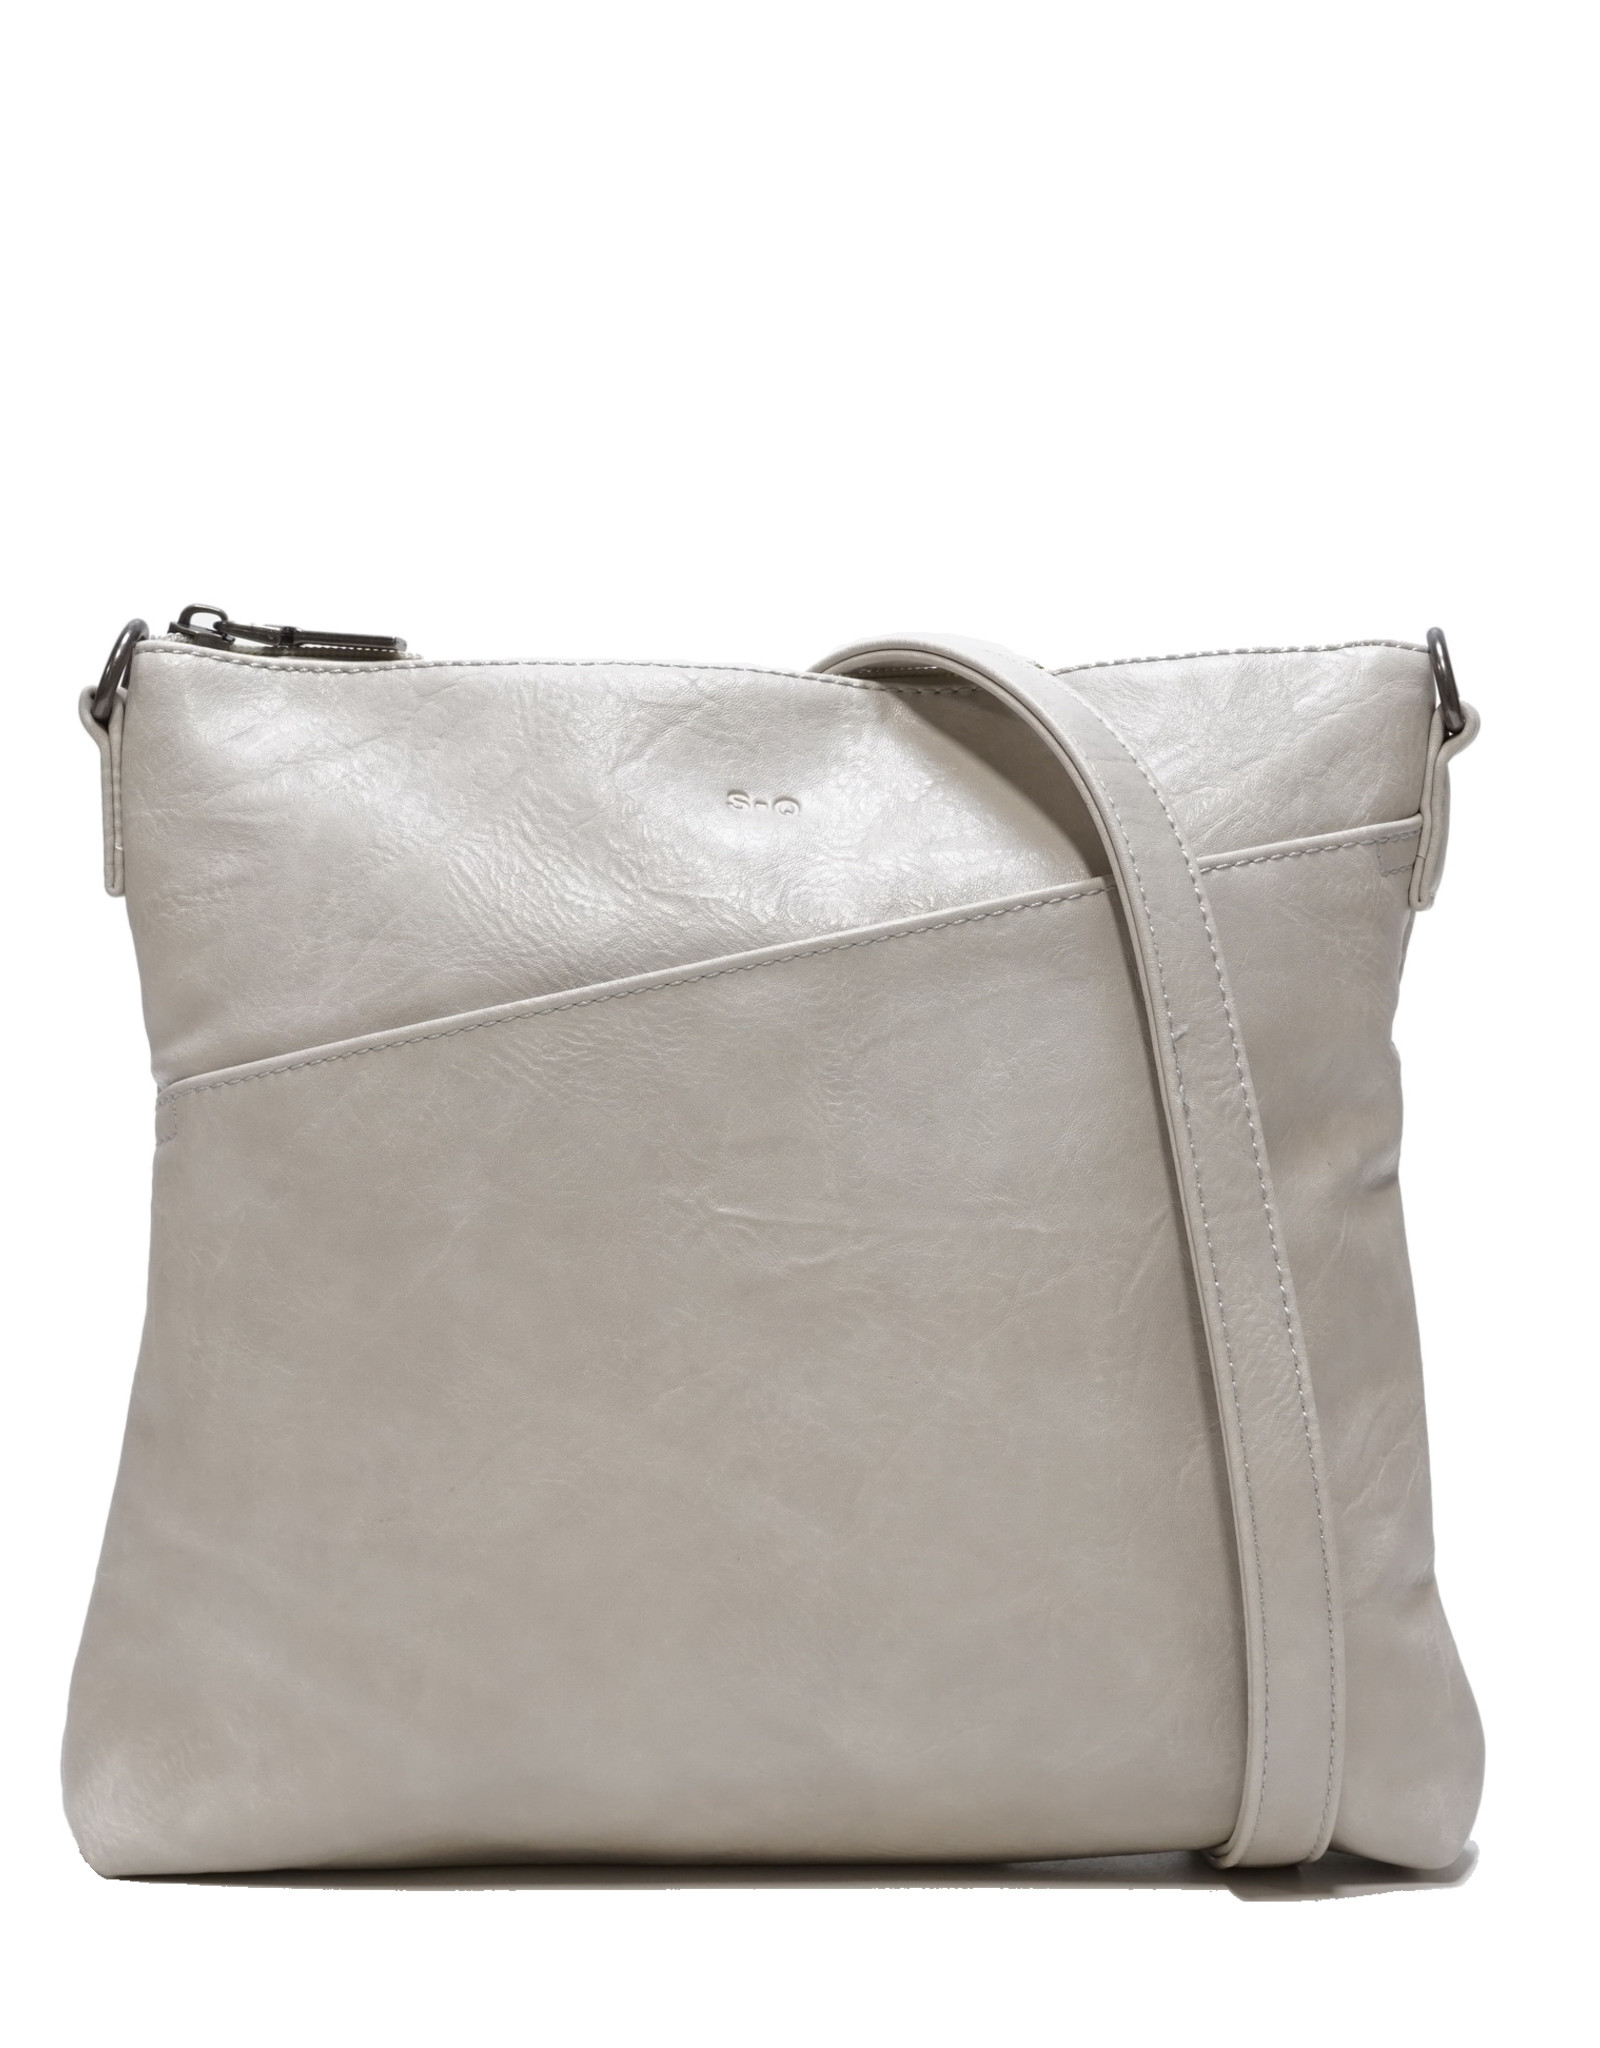 Sac bandoulière Summer blanc antique